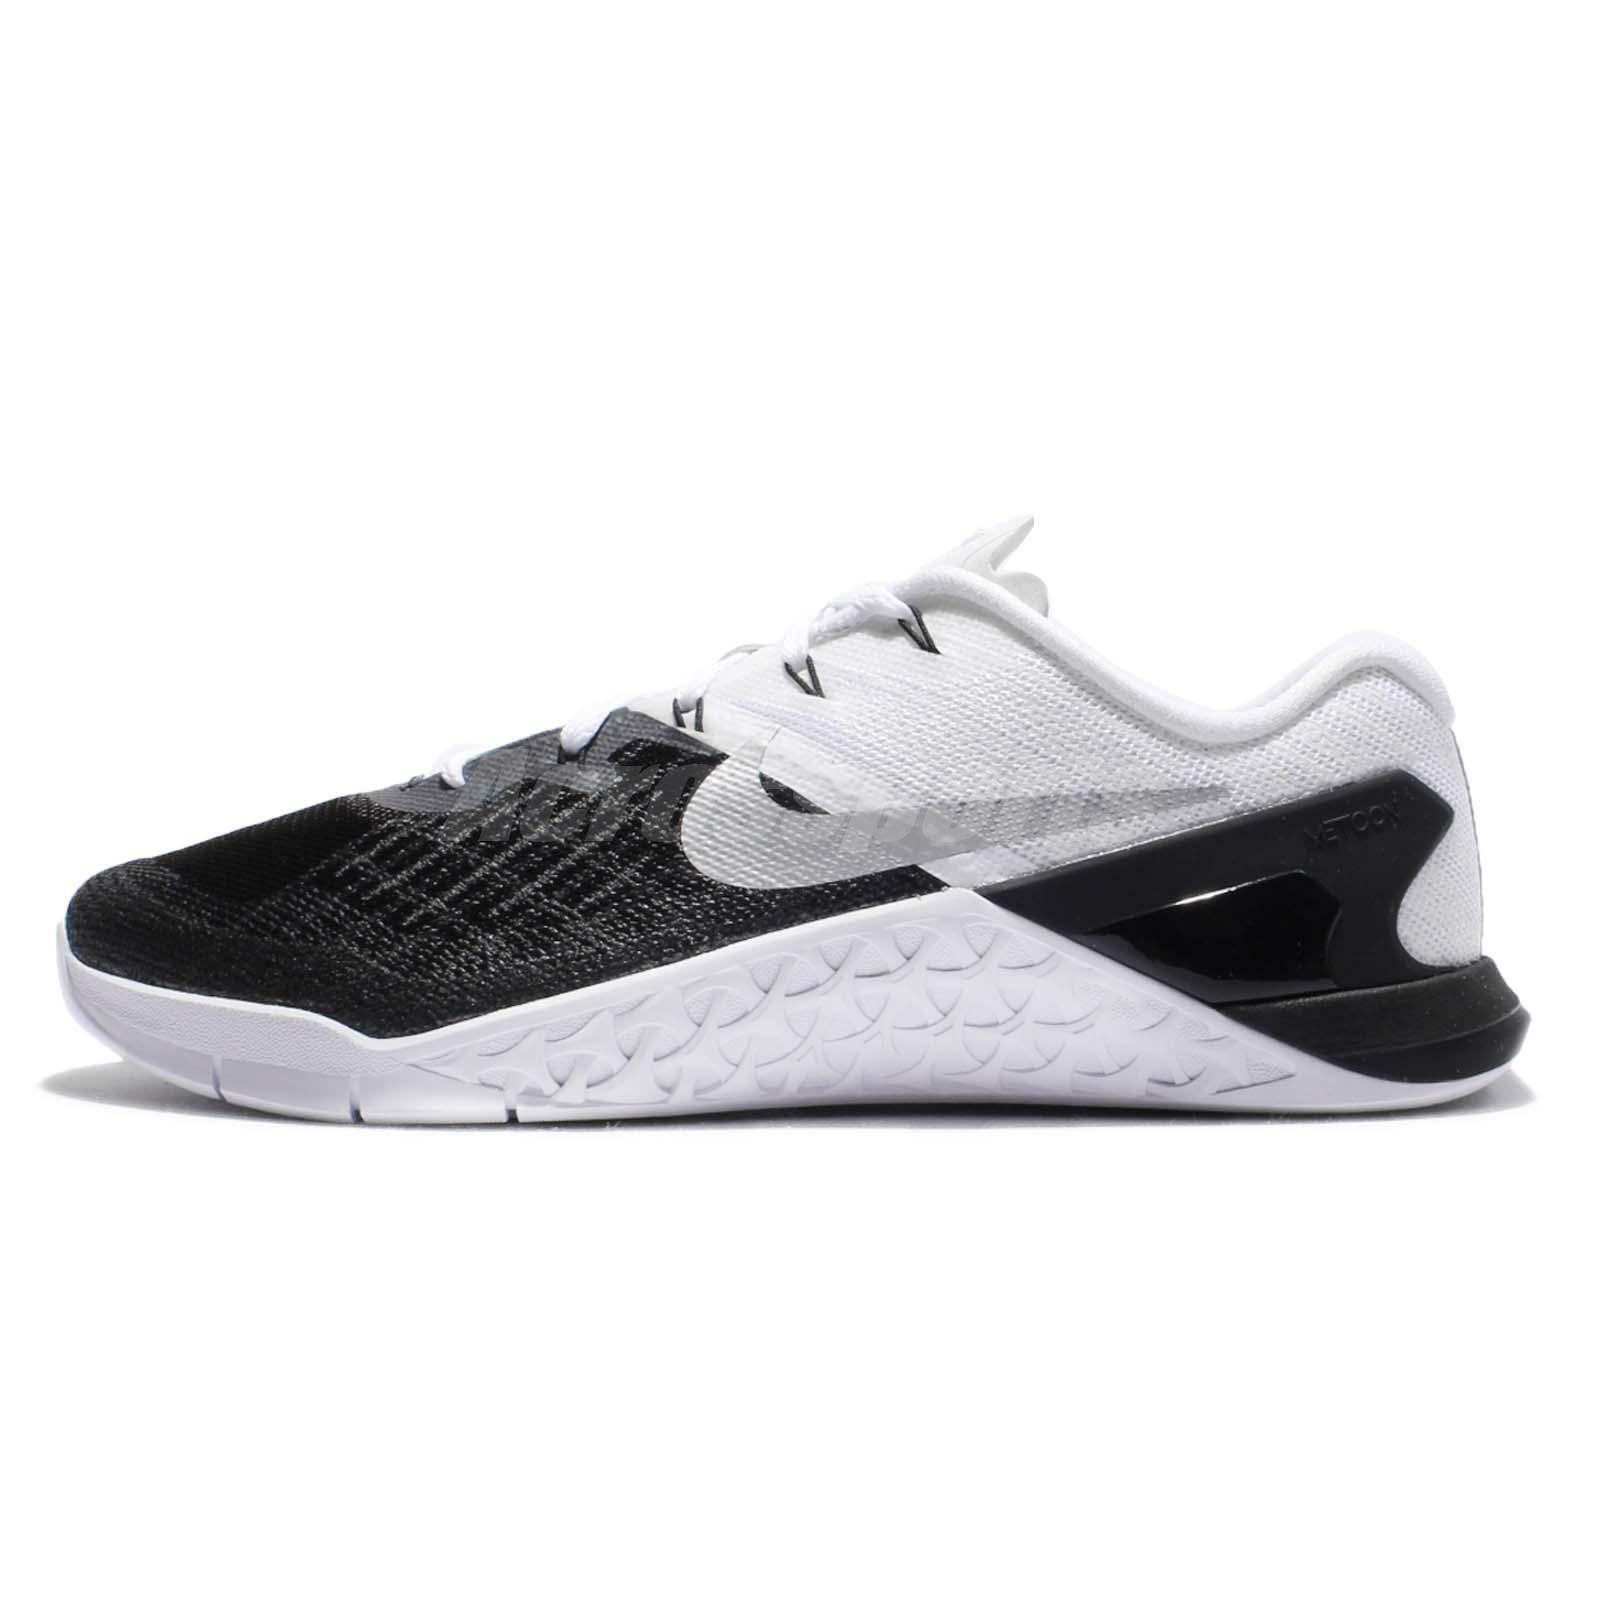 les hommes metcon 3 formation taille chaussures nike taille formation 7 noir blanc 852928 005 8a90c8